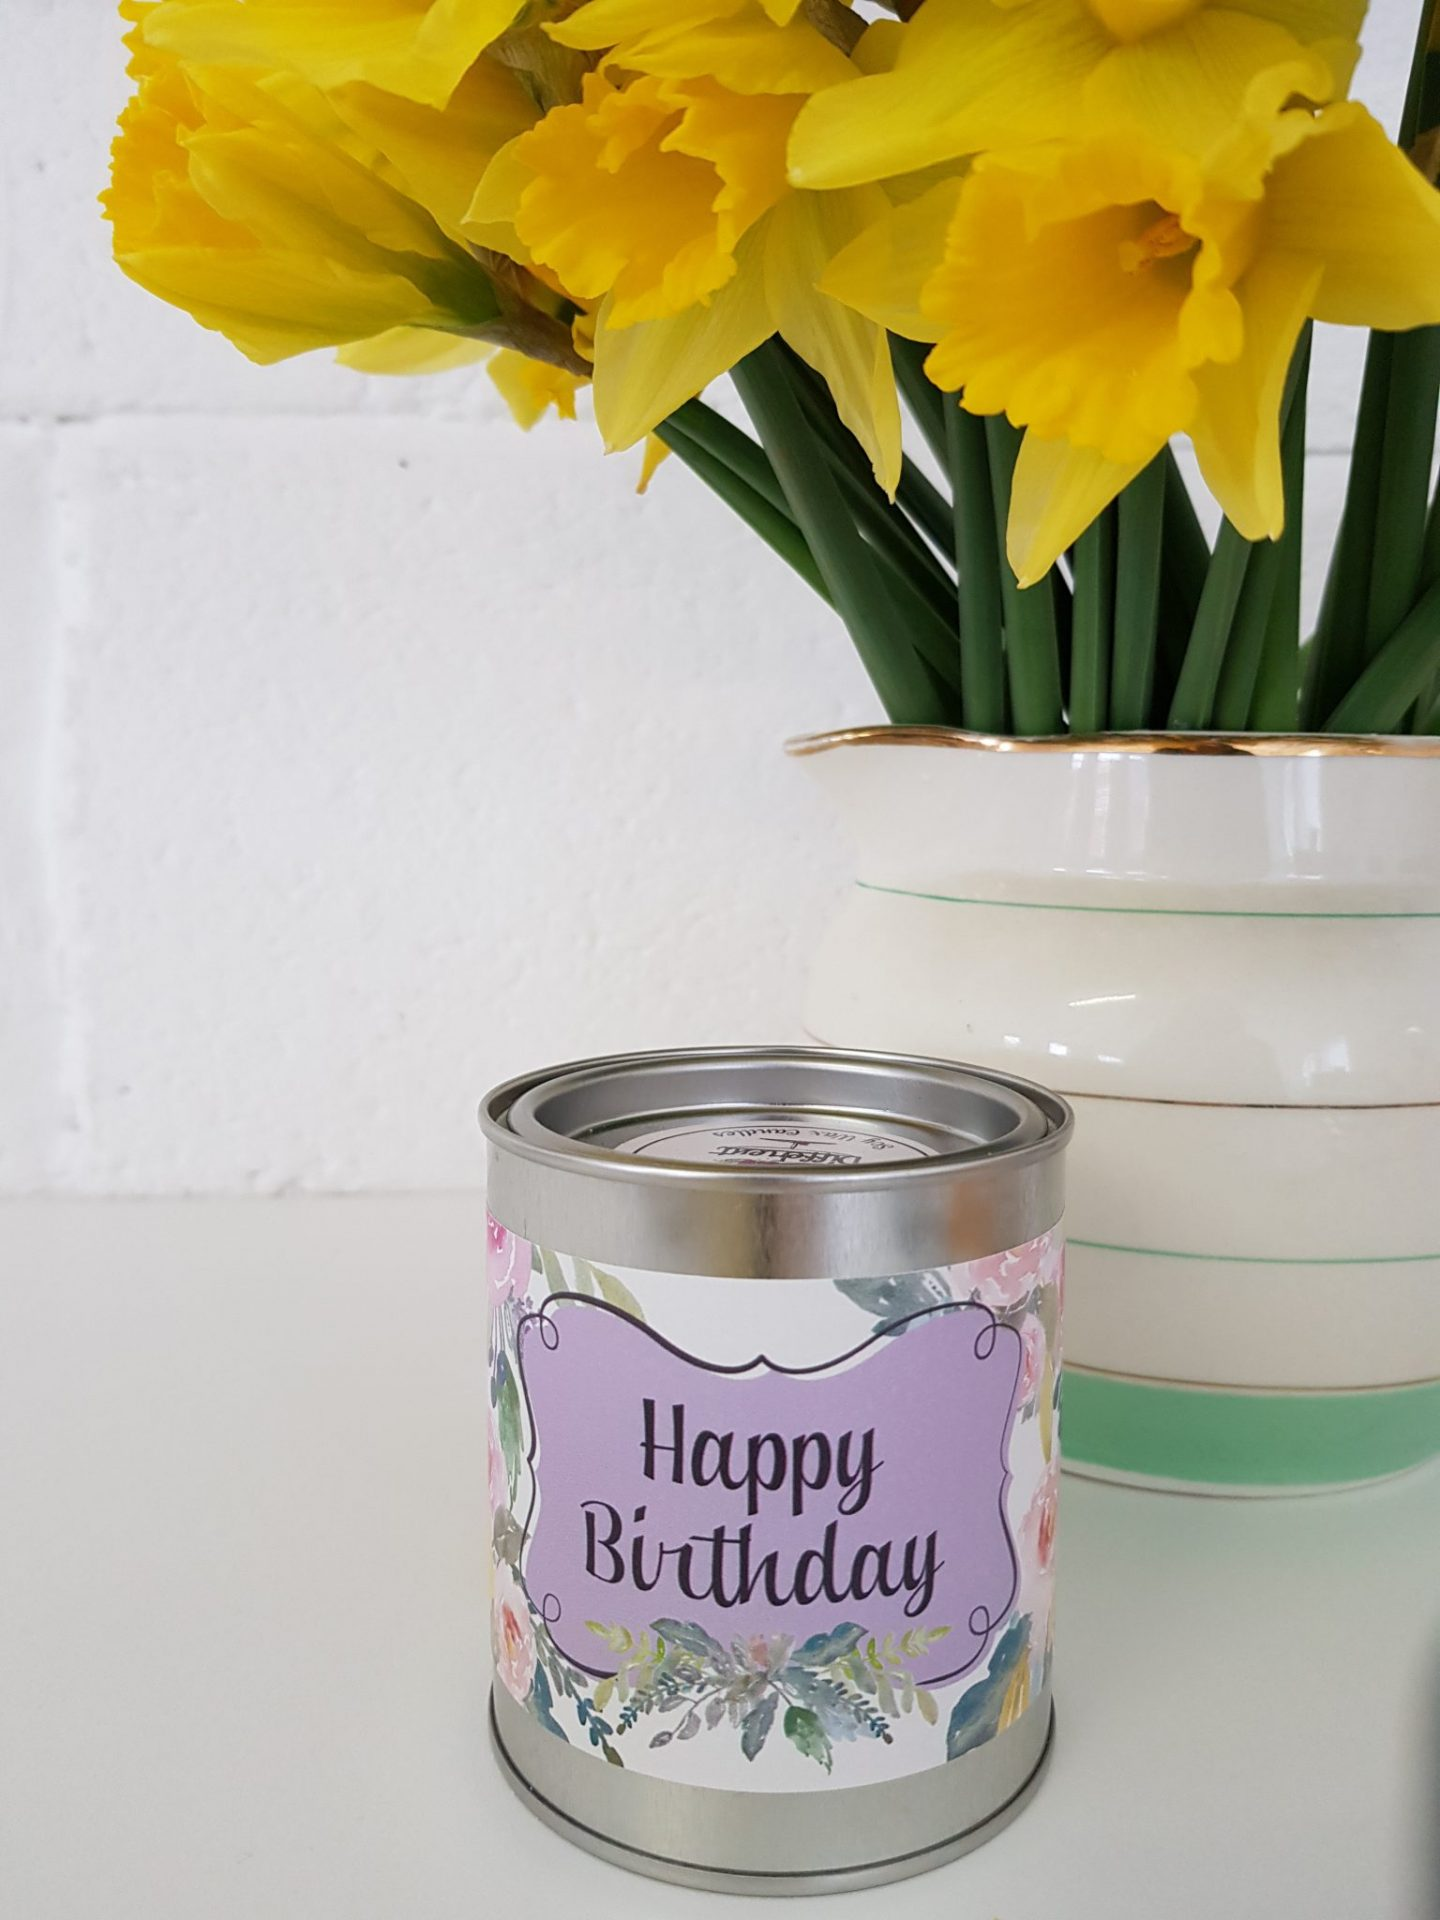 Happy Birthday Candle Cake Scented